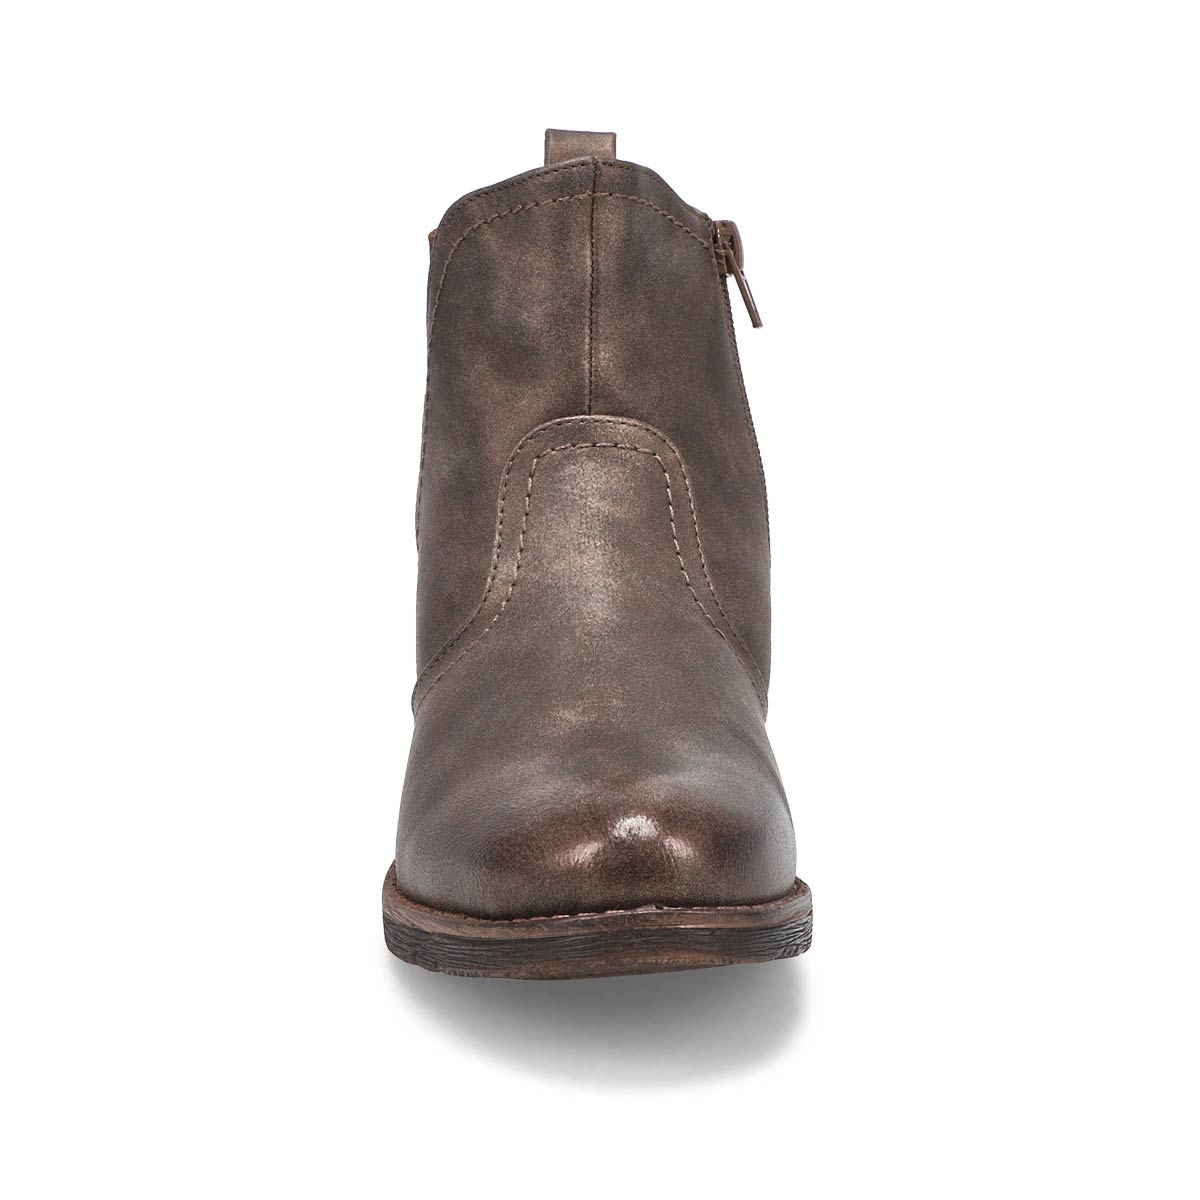 Lds Wendy 06 brown chelsea boot